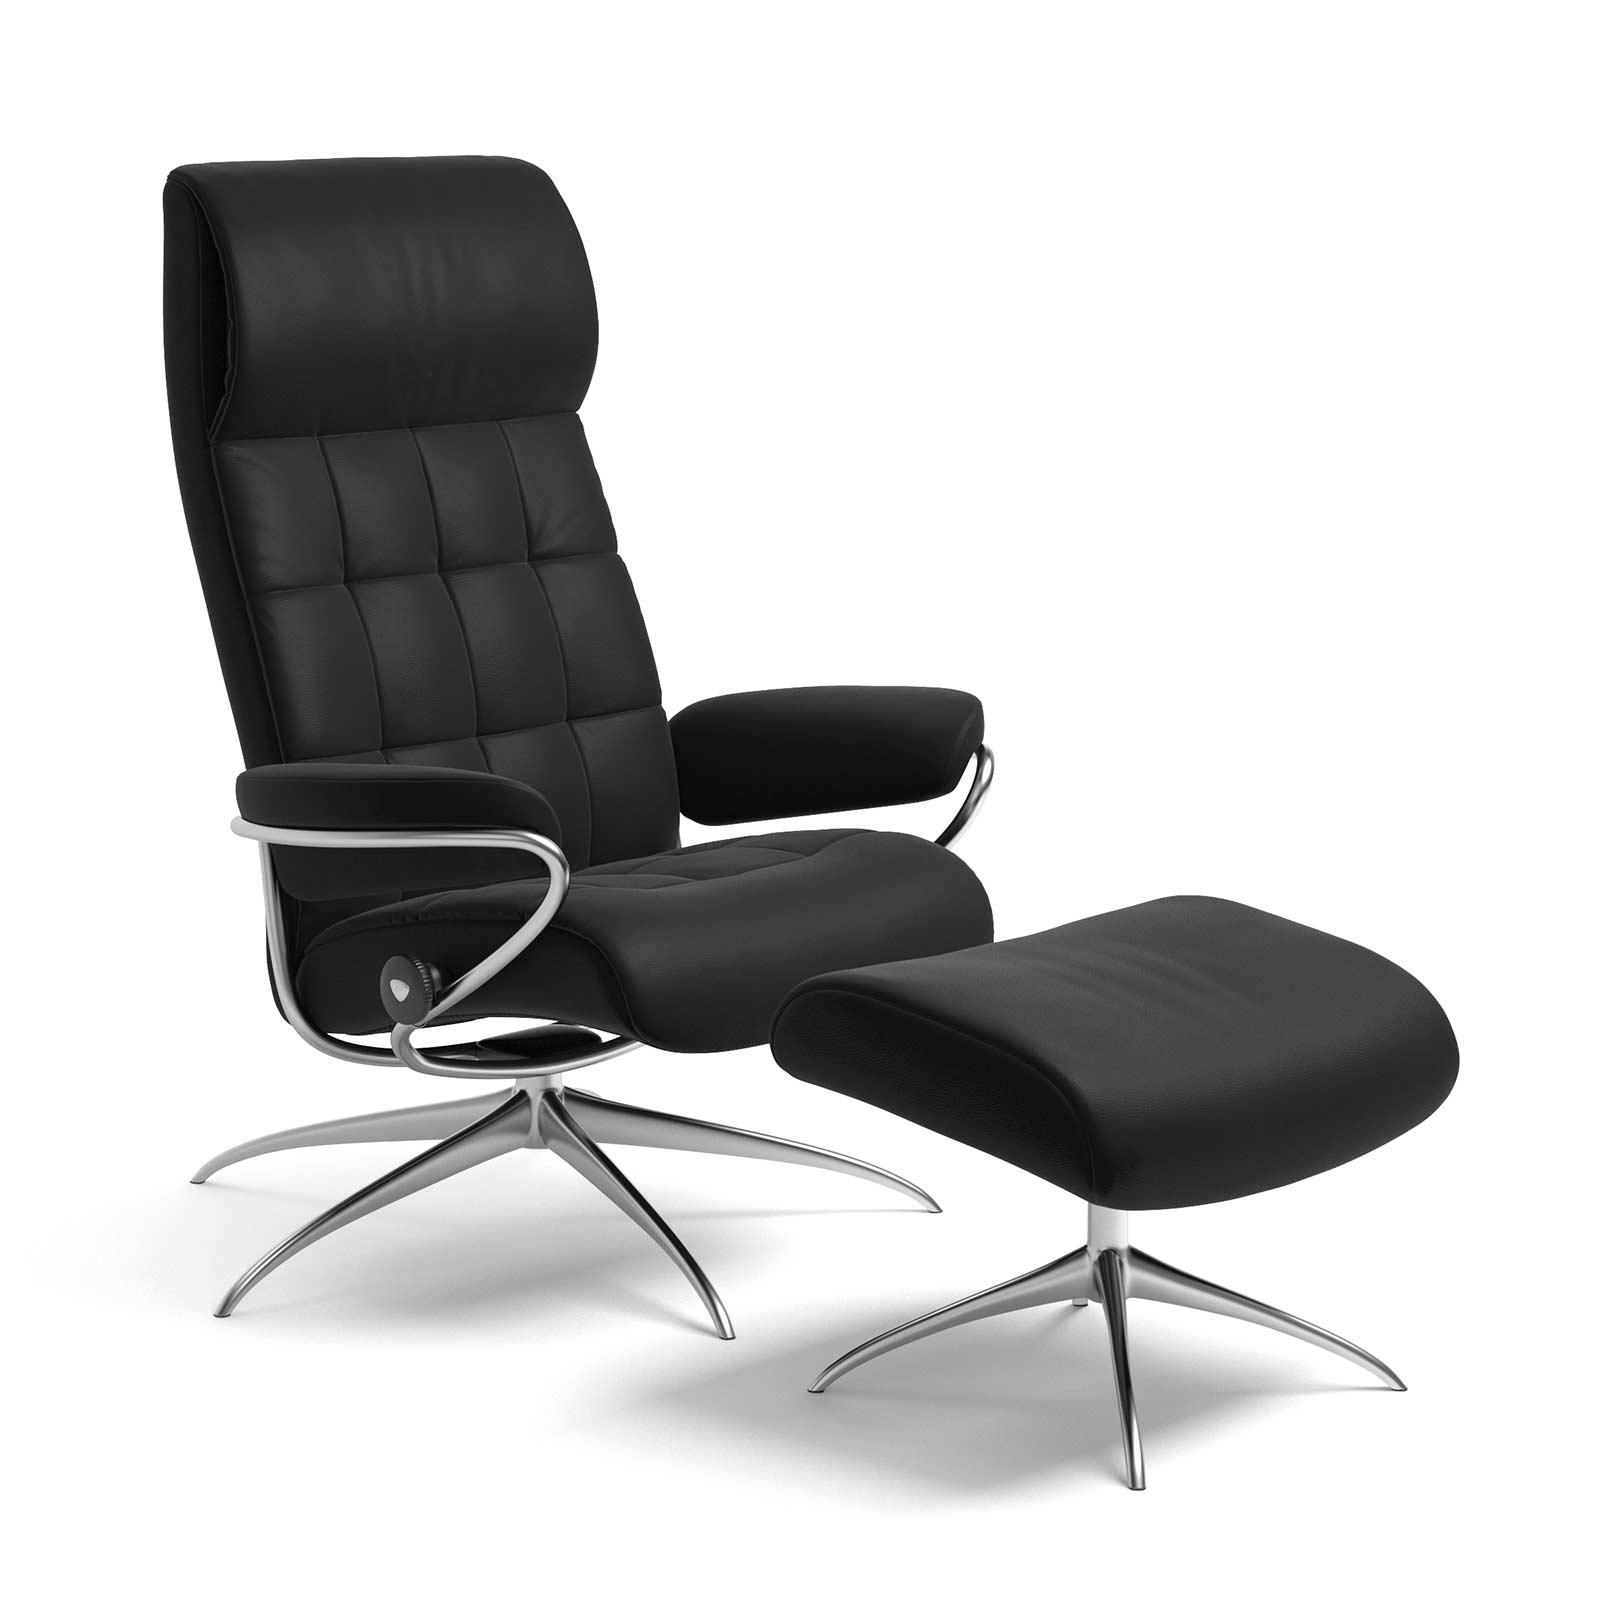 Stressless Sessel Ohne Hocker Stressless London Sessel Mit Hoher Lehne Lederfarbe Schwarz